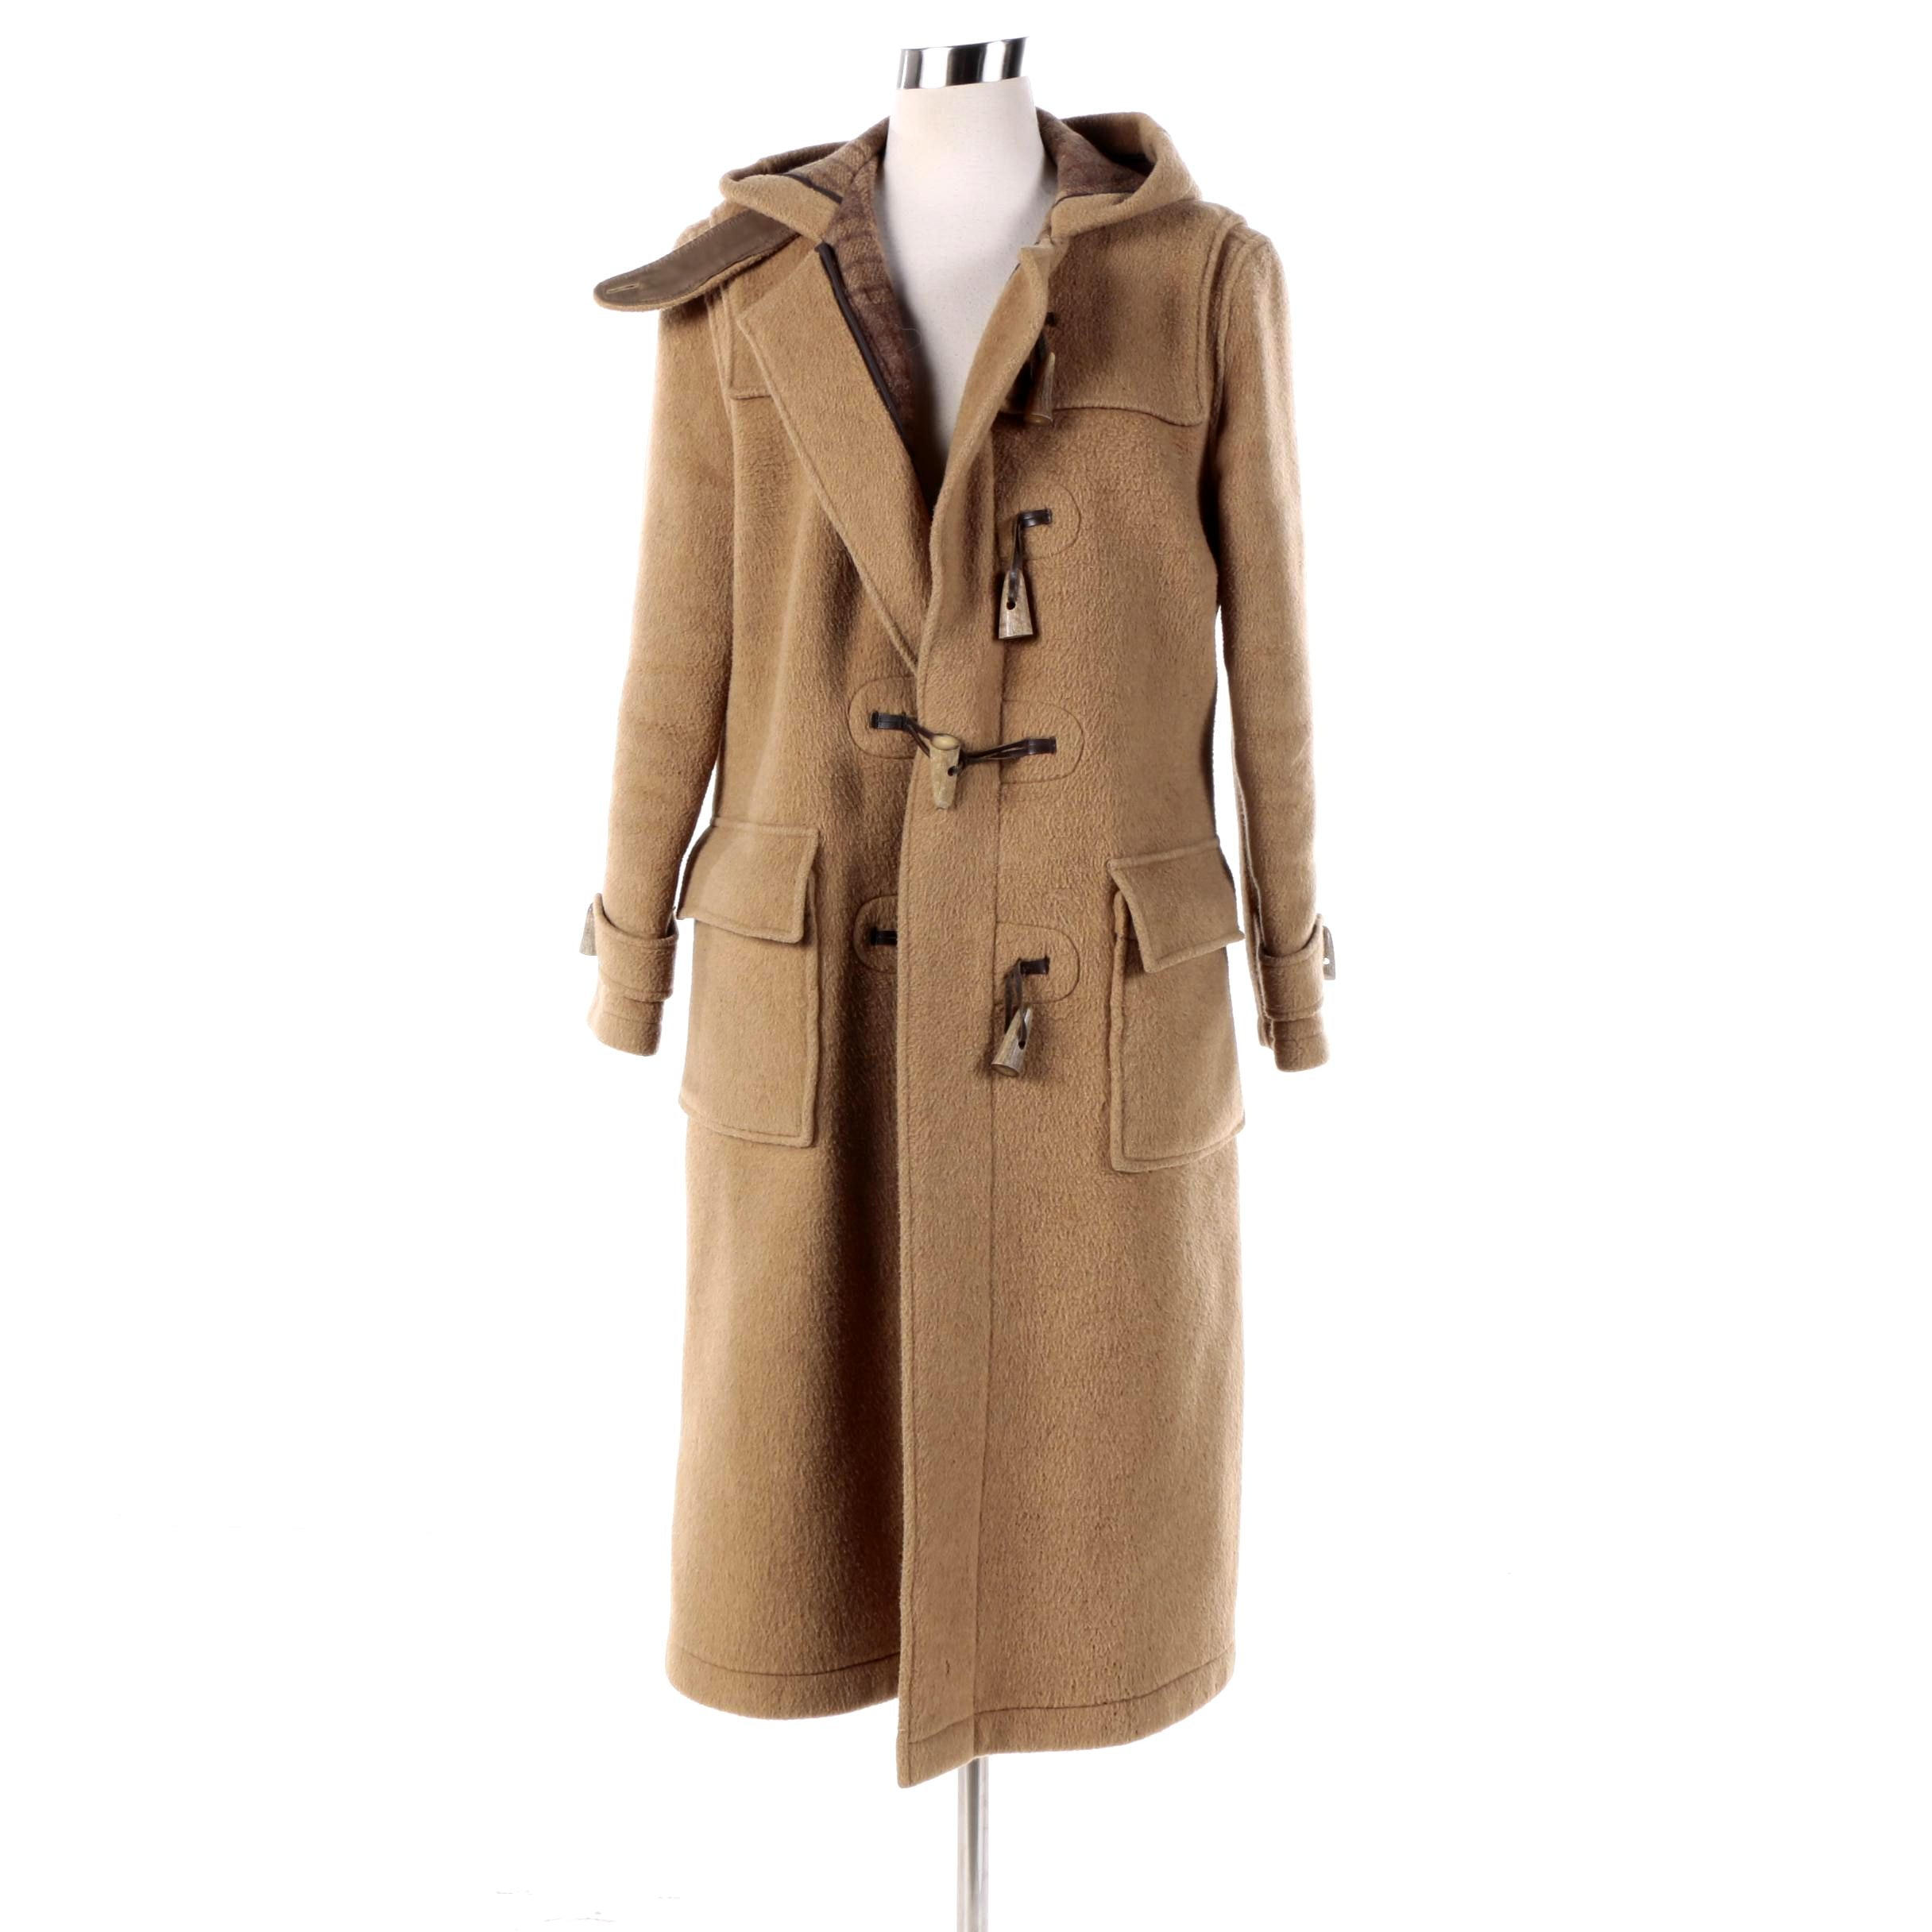 Women's Vintage Tibbett of England Tan Wool Toggle Coat